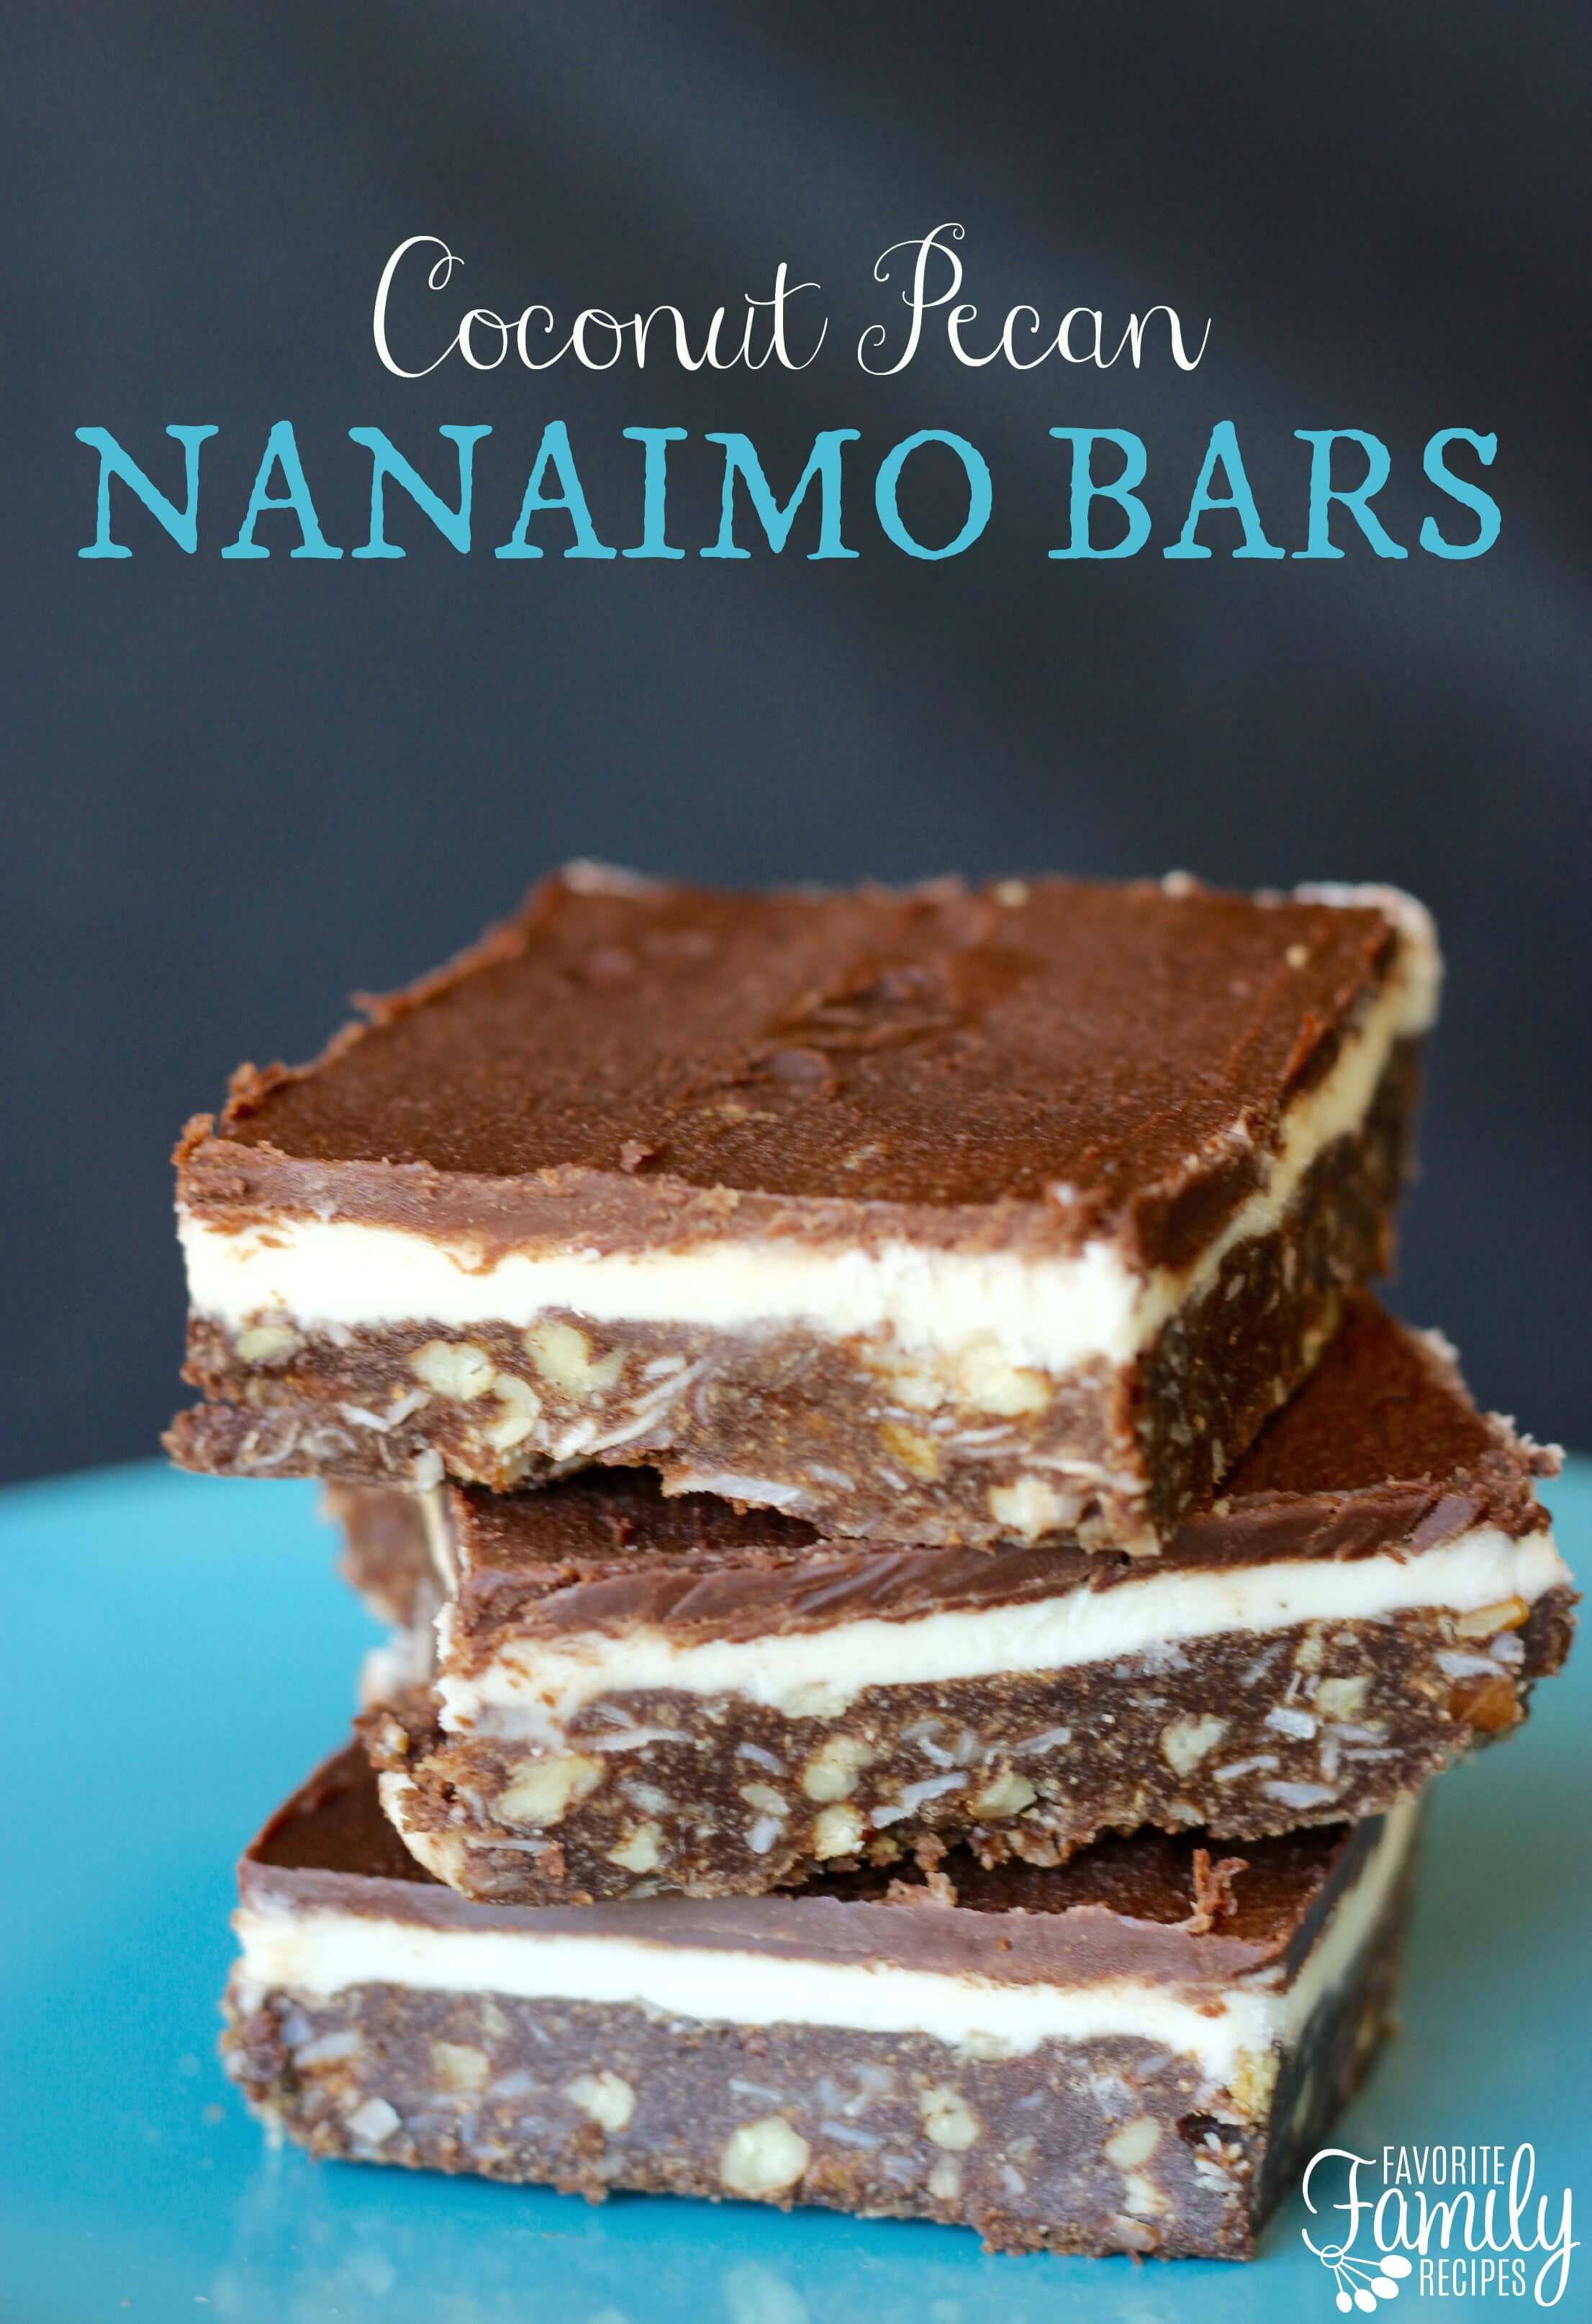 Coconut Pecan Nanaimo Bars -Favorite Family Recipes